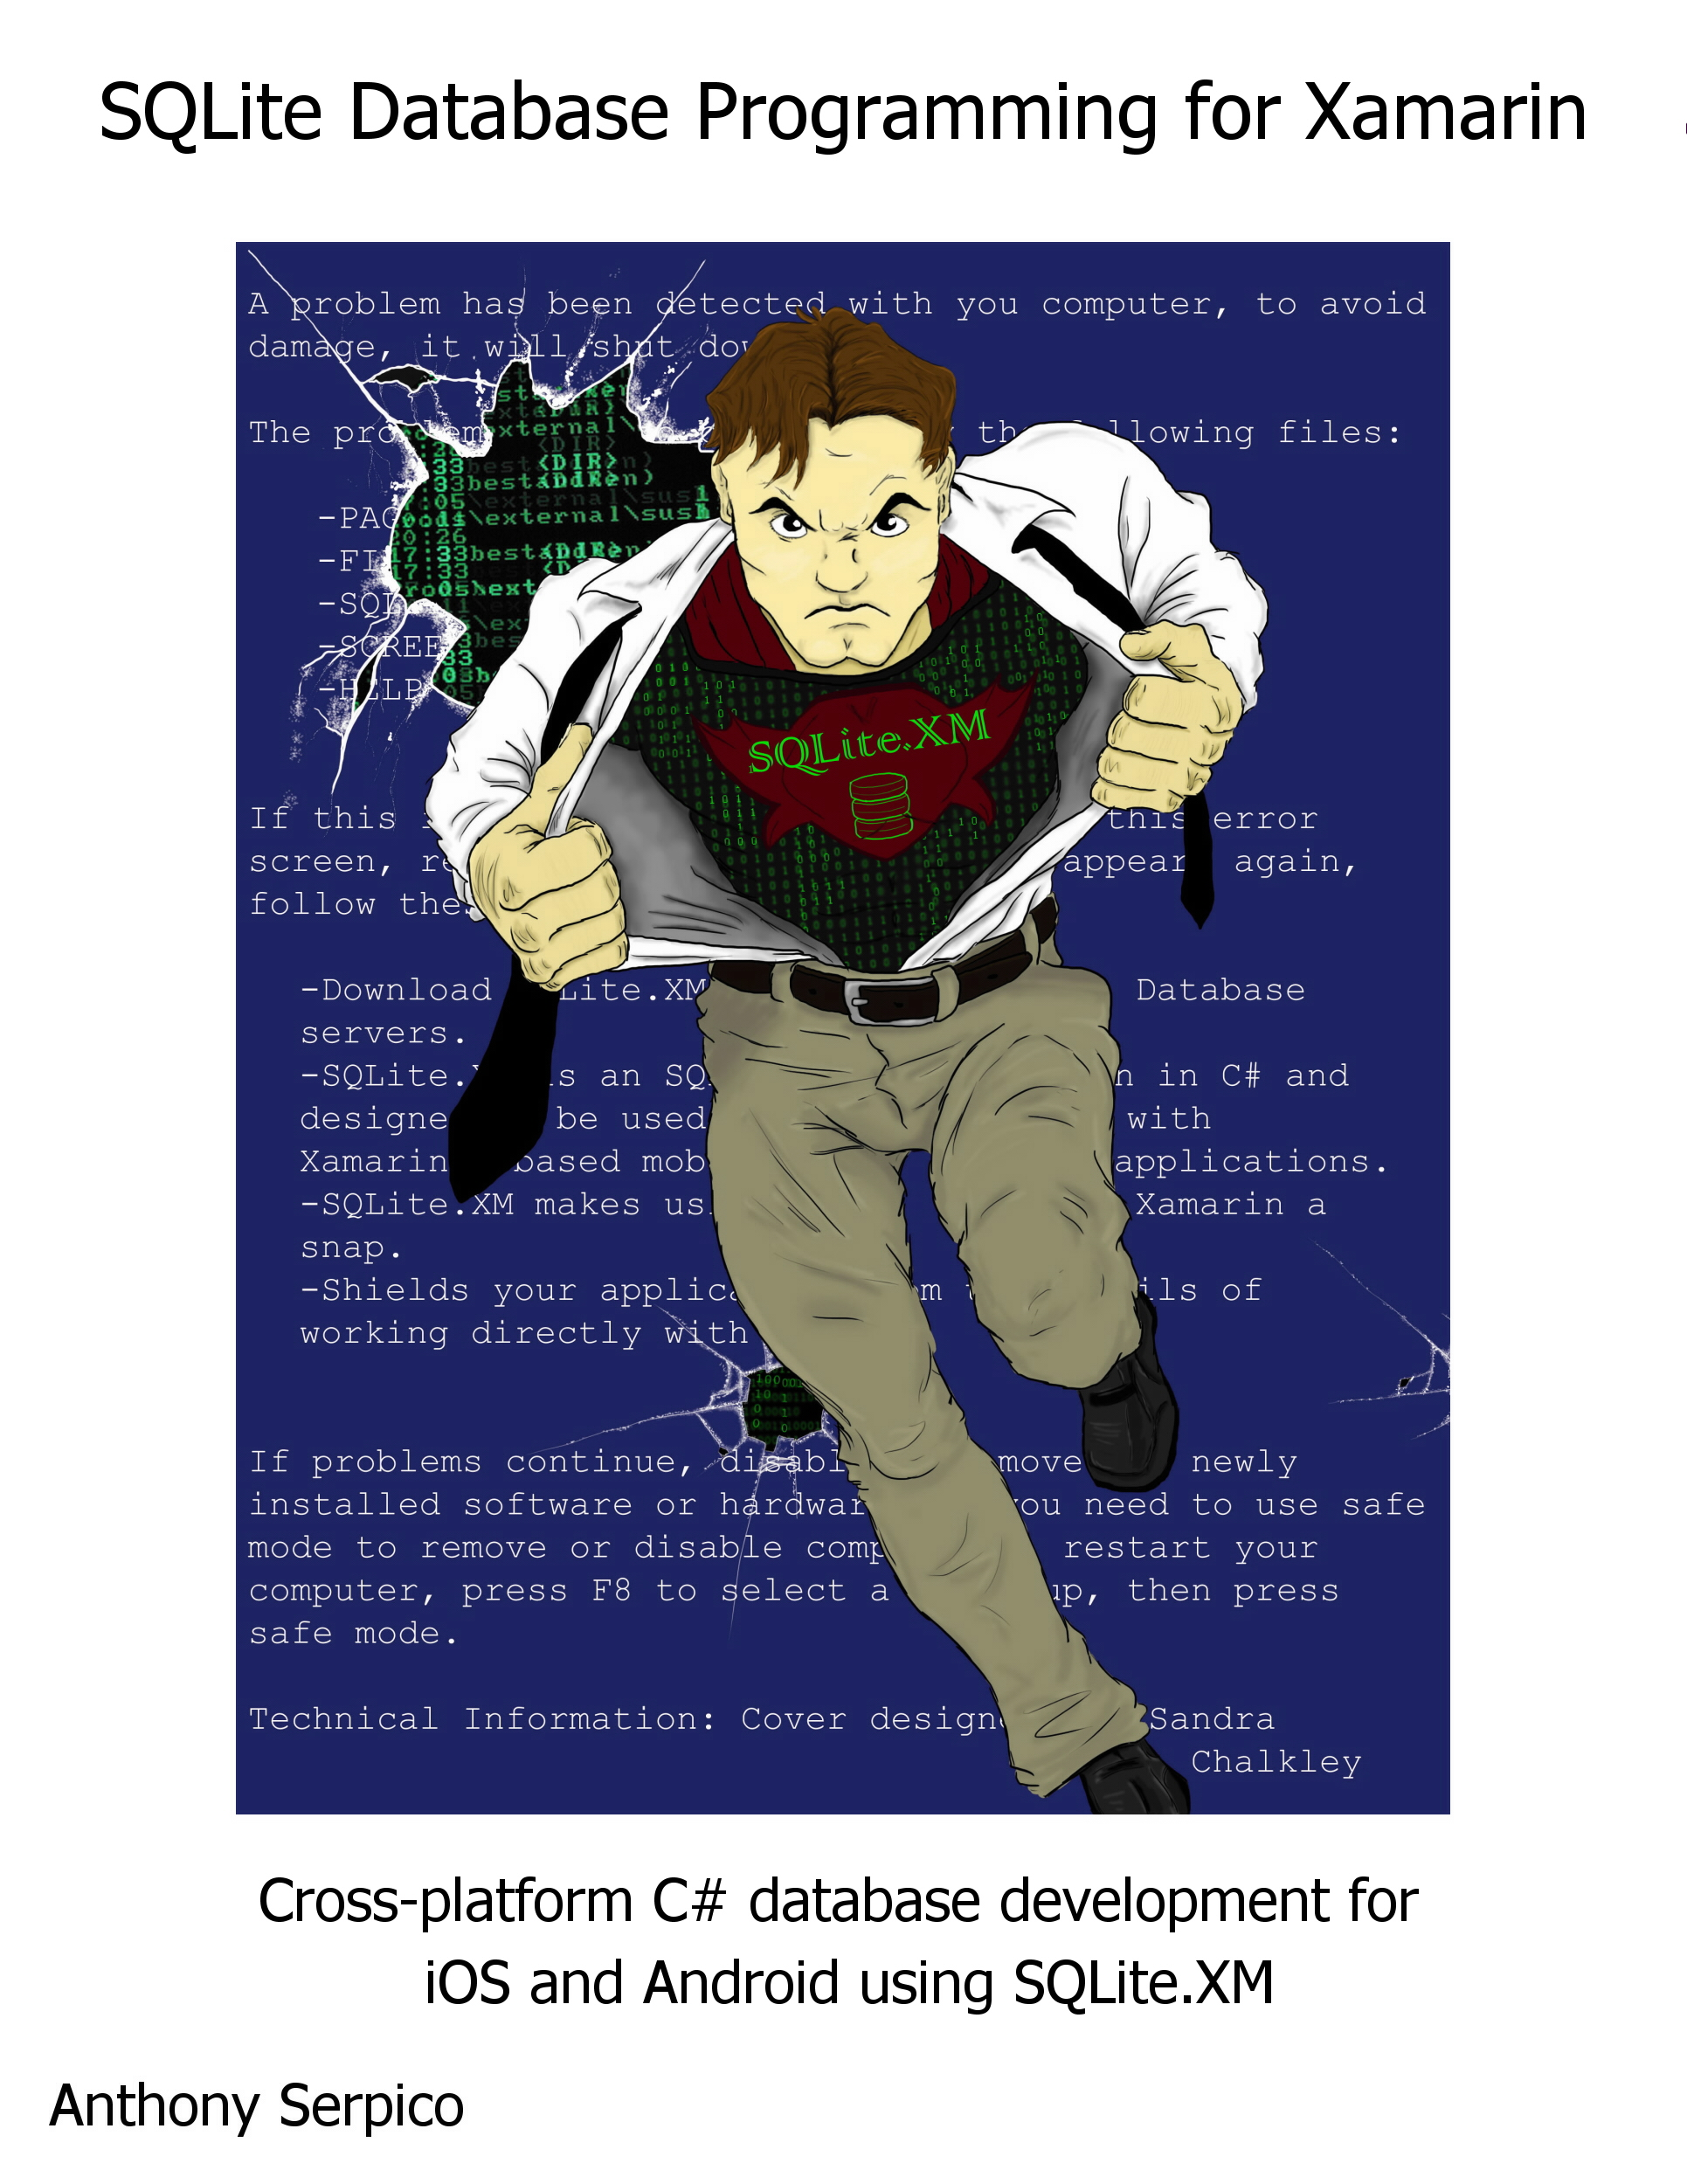 Smashwords – SQLite Database Programming for Xamarin: Cross-platform